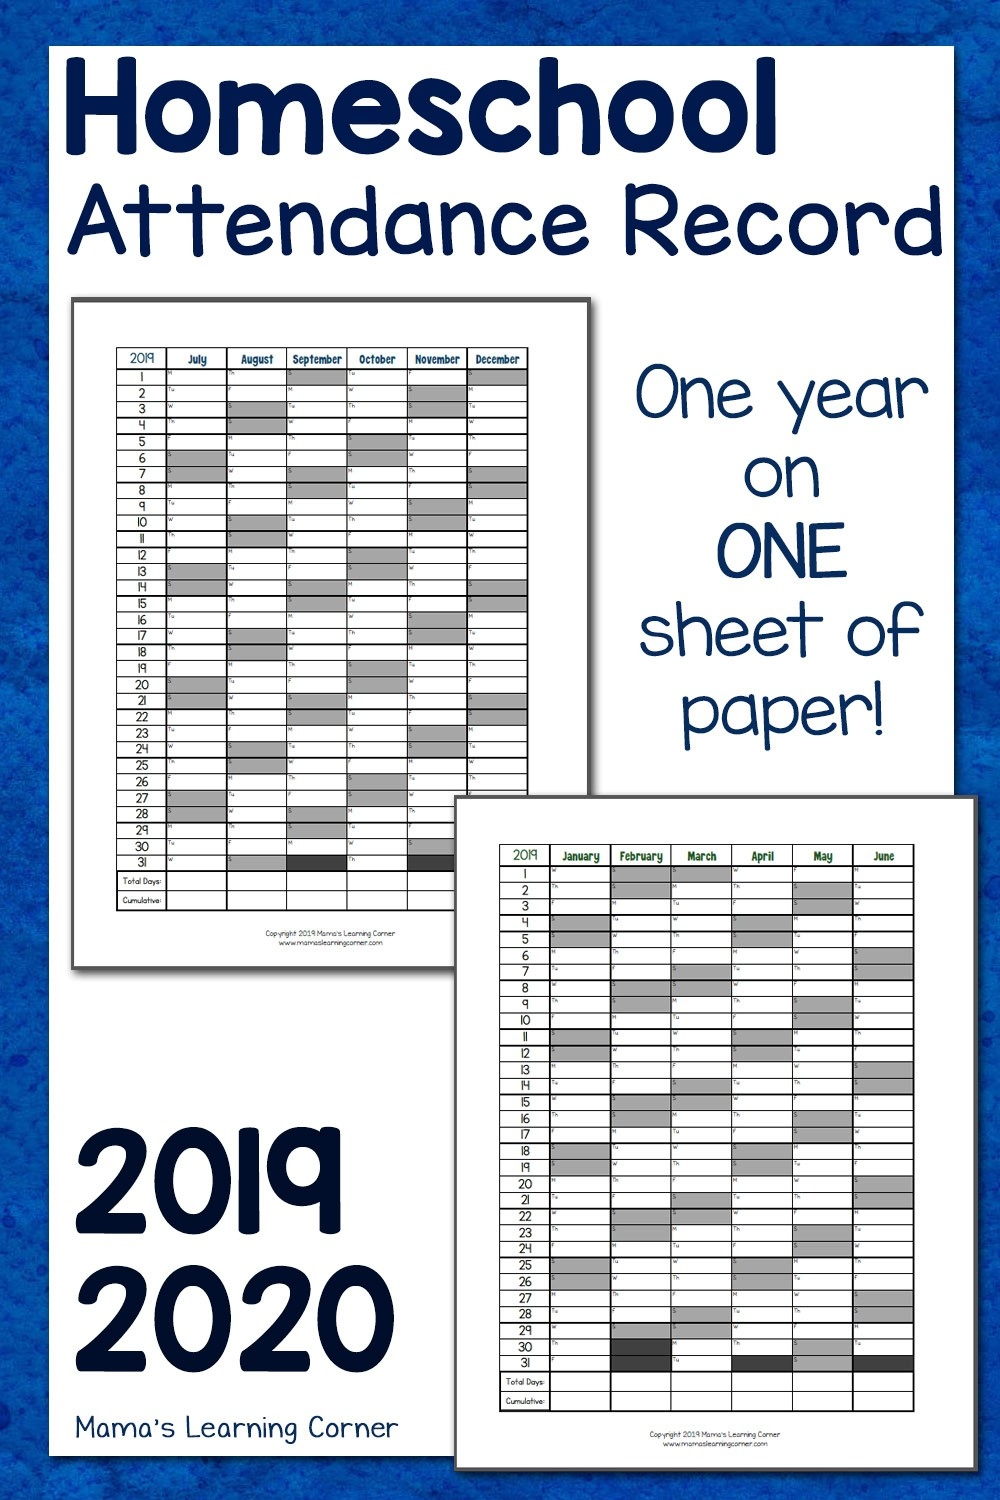 Simple Homeschool Attendance Record 2019-2020 - Mamas  2020 Attendane Tracking Calendar